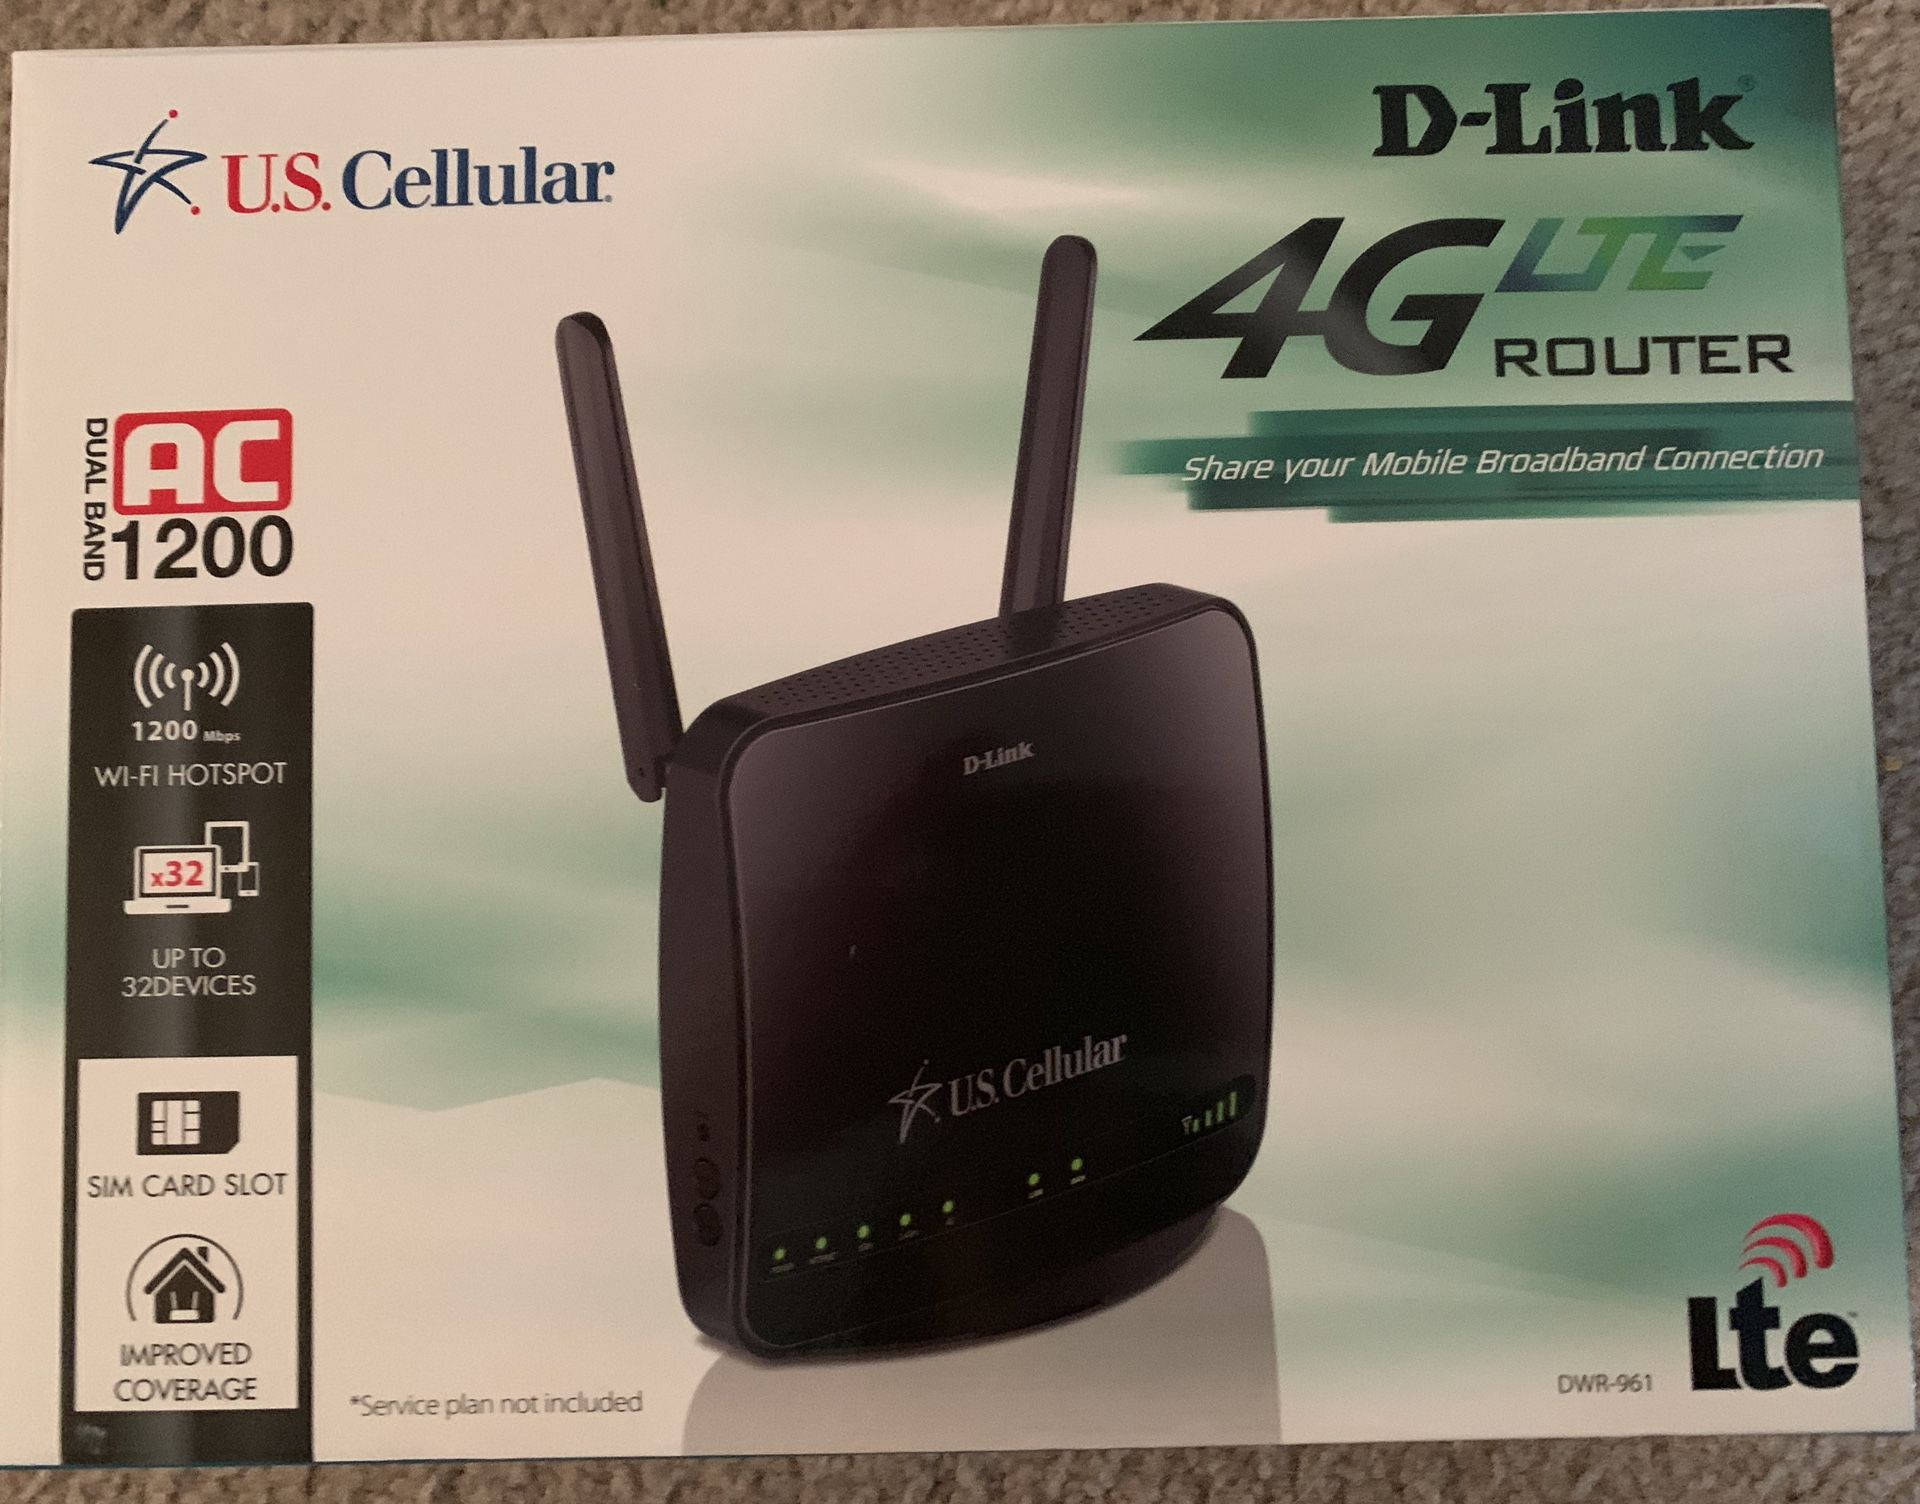 US CELLULAR D-Link (WiFi router)